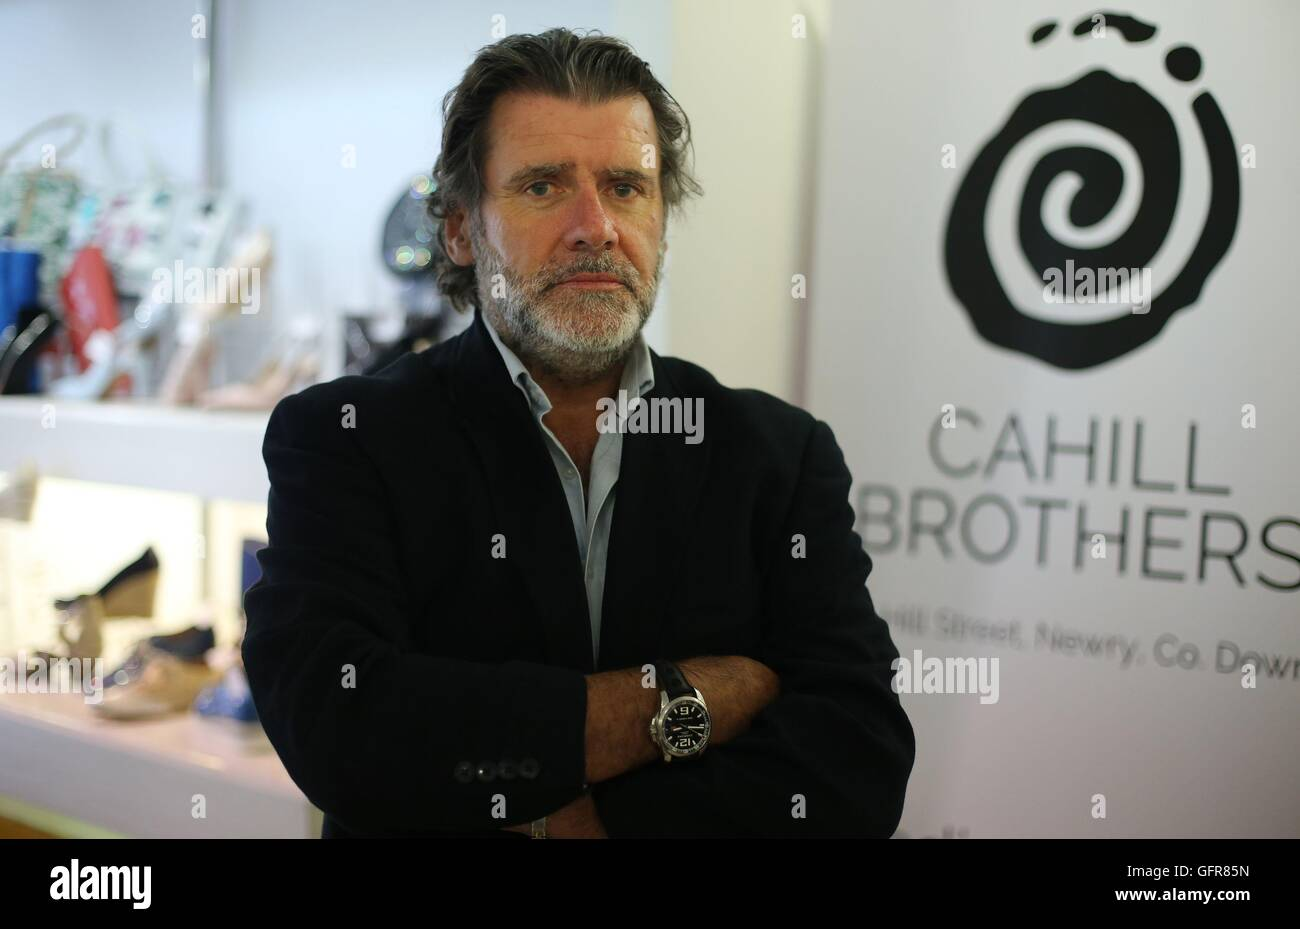 Declan McChesney, owner of Cahill Brothers' shoe shop in Newry